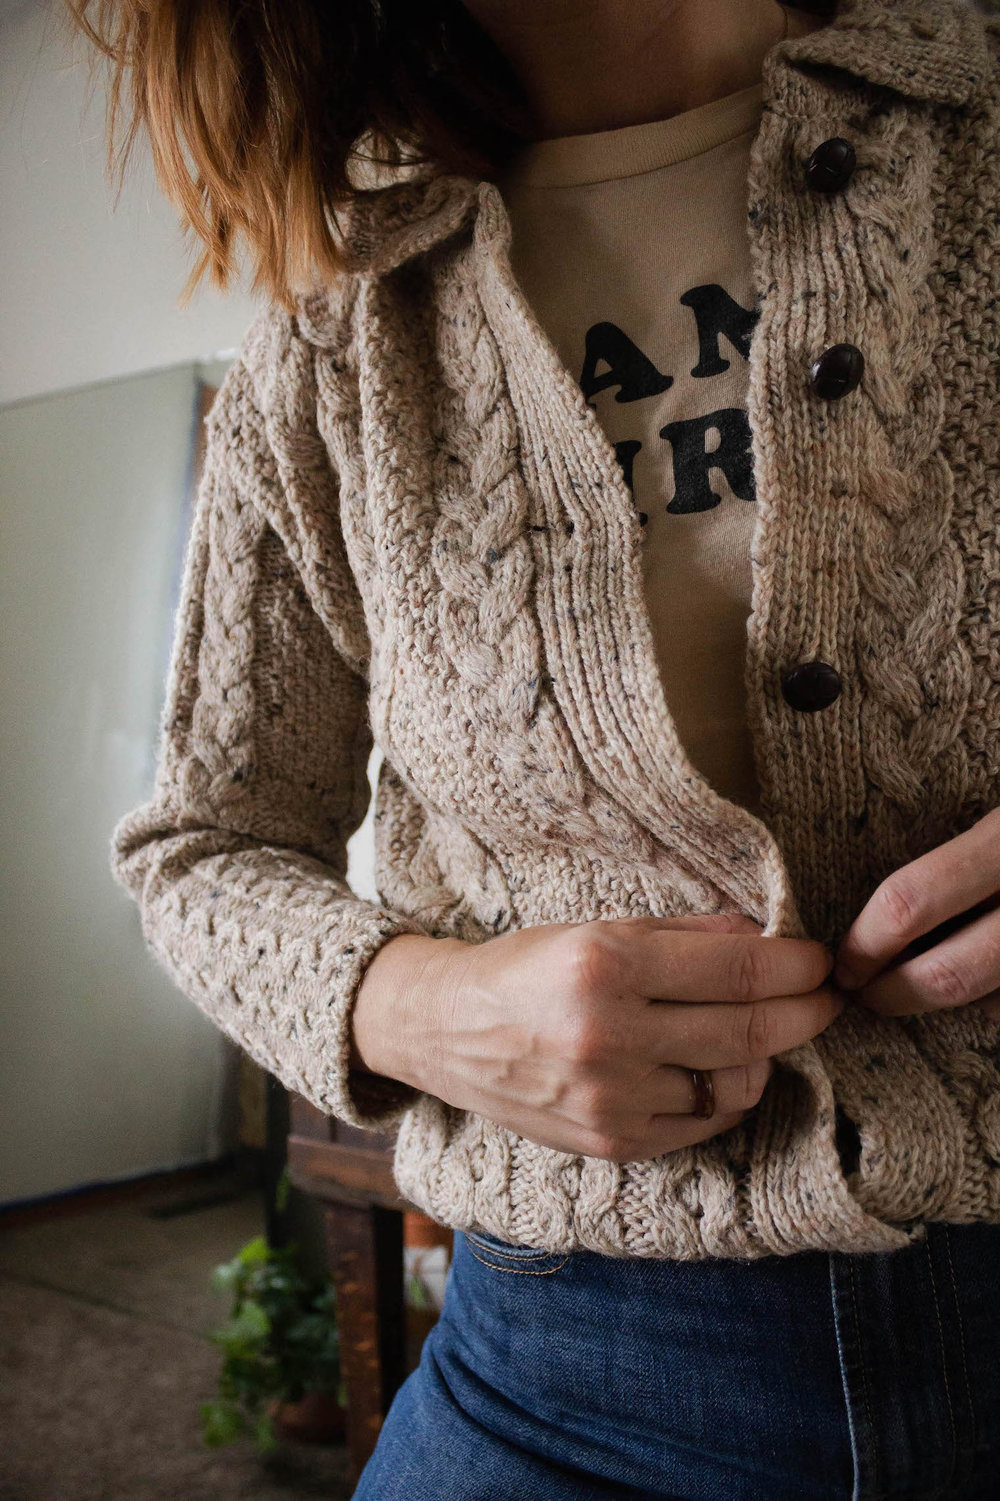 Mama bird shirt and cable knit sweater - A Week Of Easy & Sophisticated Outfits With Karin Rambo From Truncation on The Good Trade